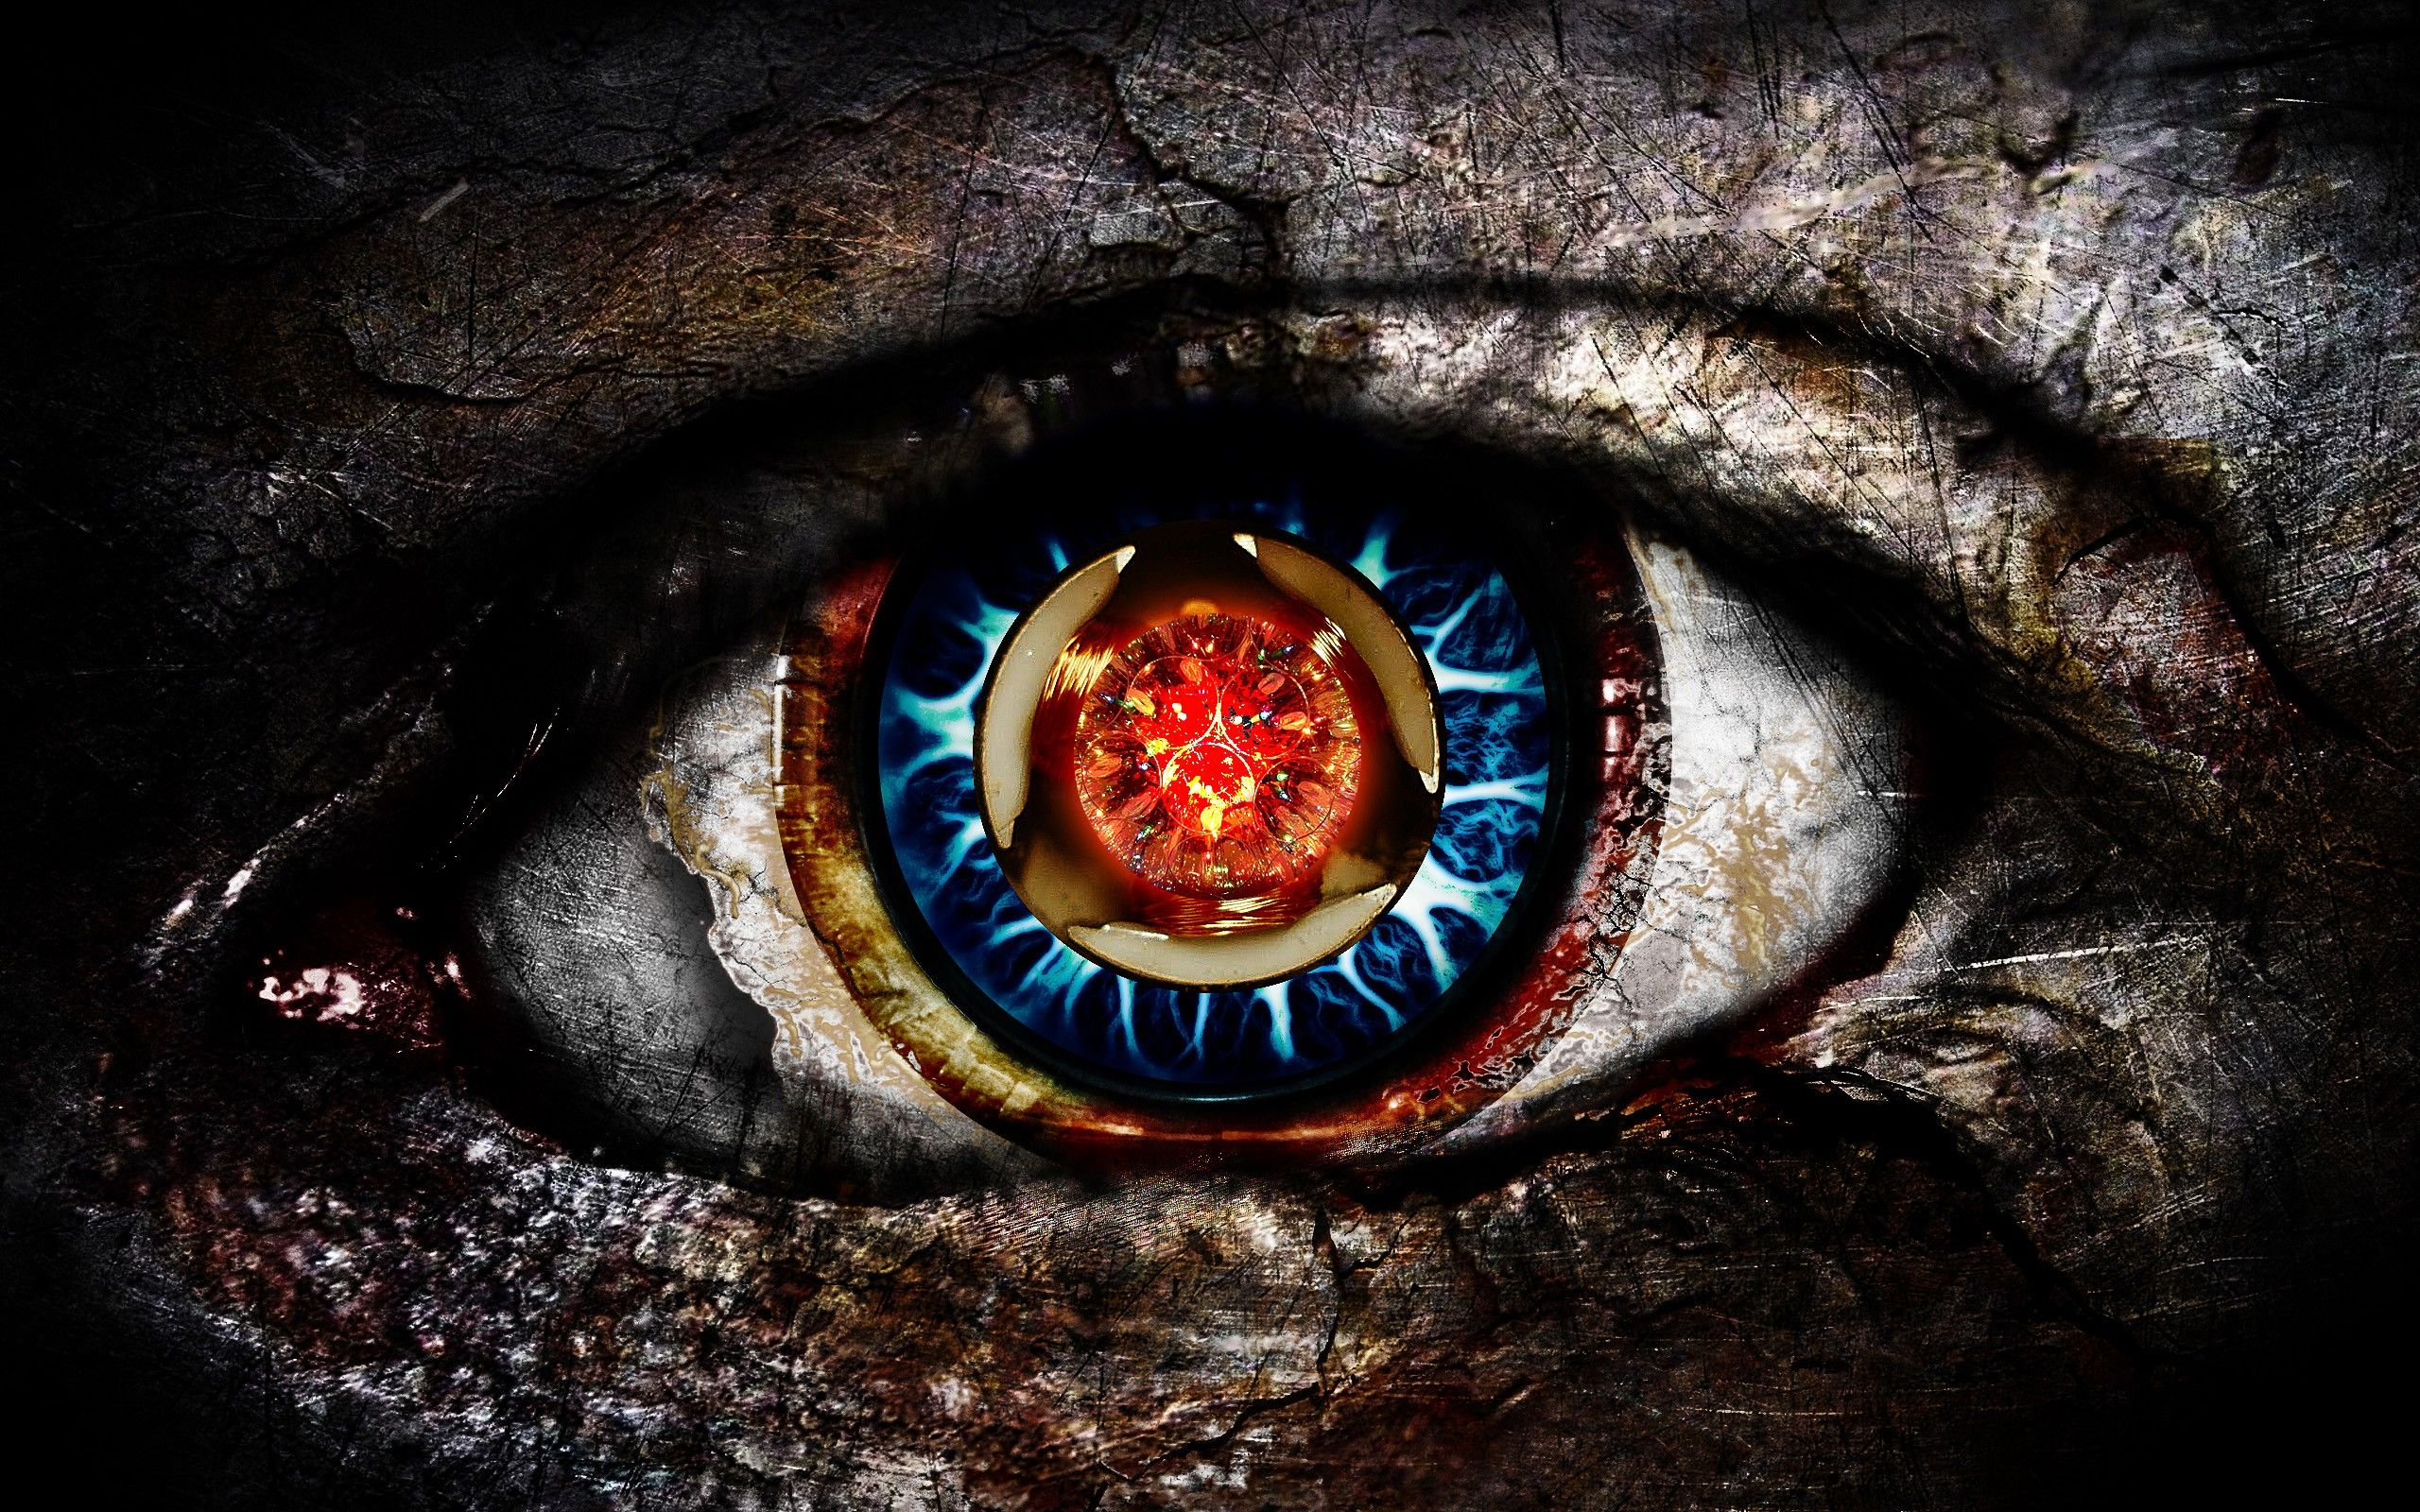 Hd wallpaper art - Wallpapers Digital Art Eyes Artwork Hd 2560x1600